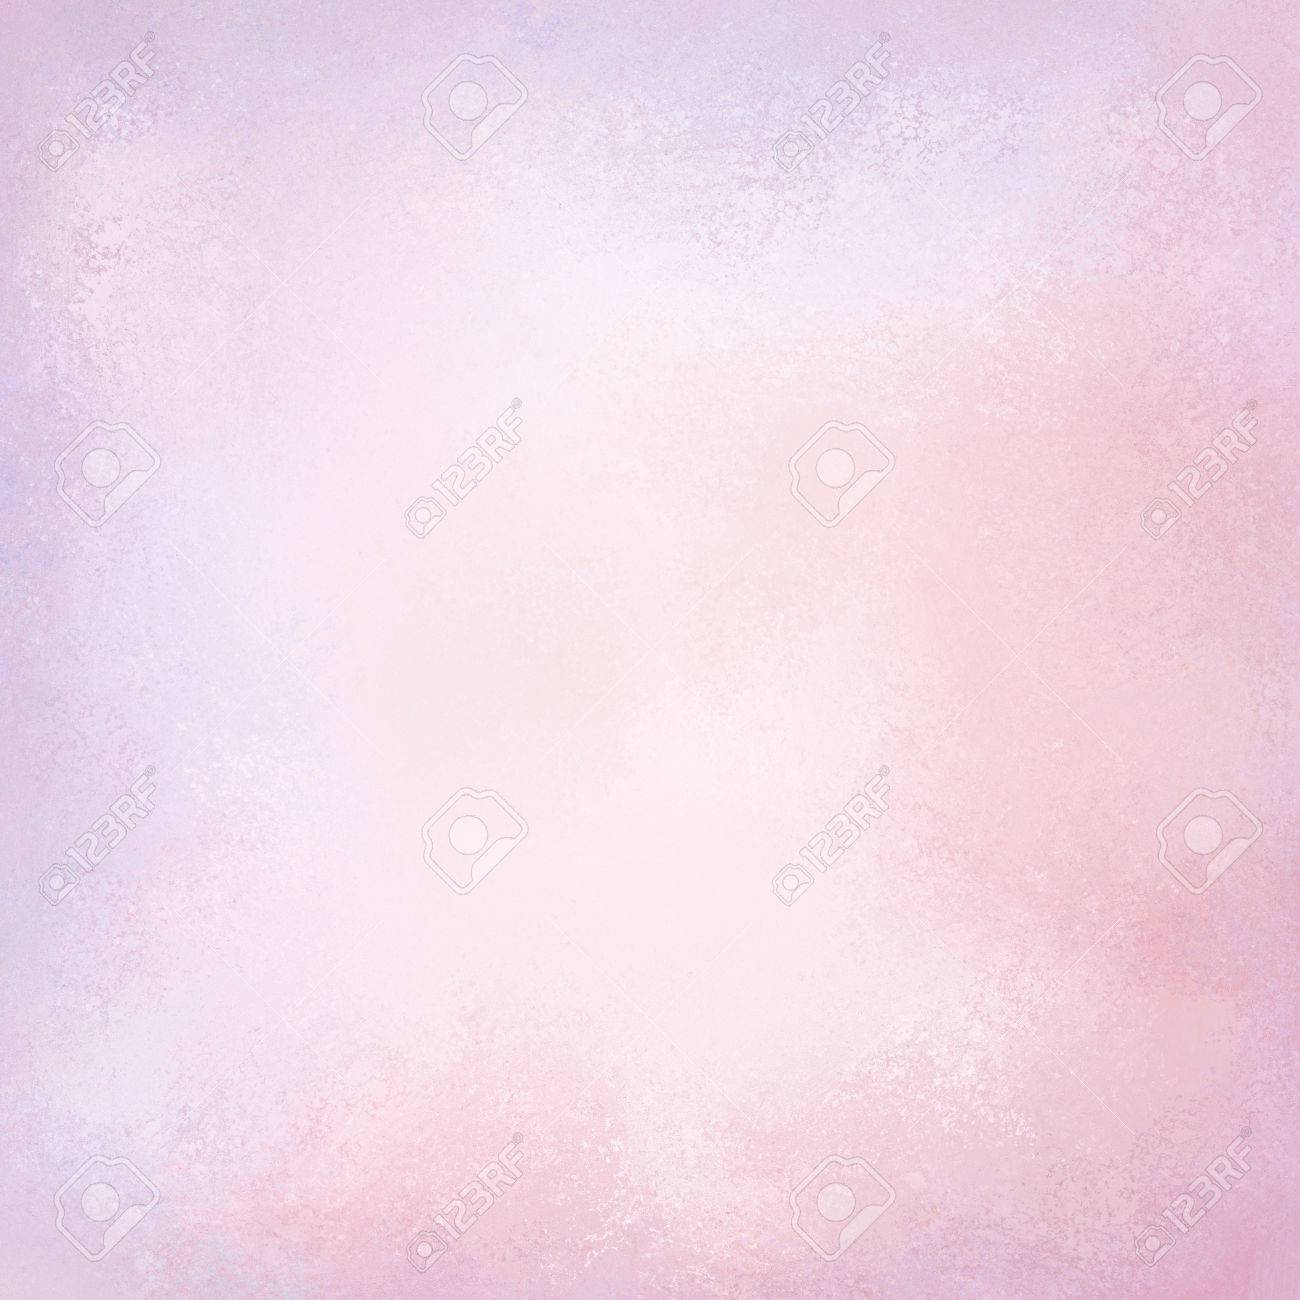 soft pretty pink and purple background design with vintage texture and pastel spring color stock photo